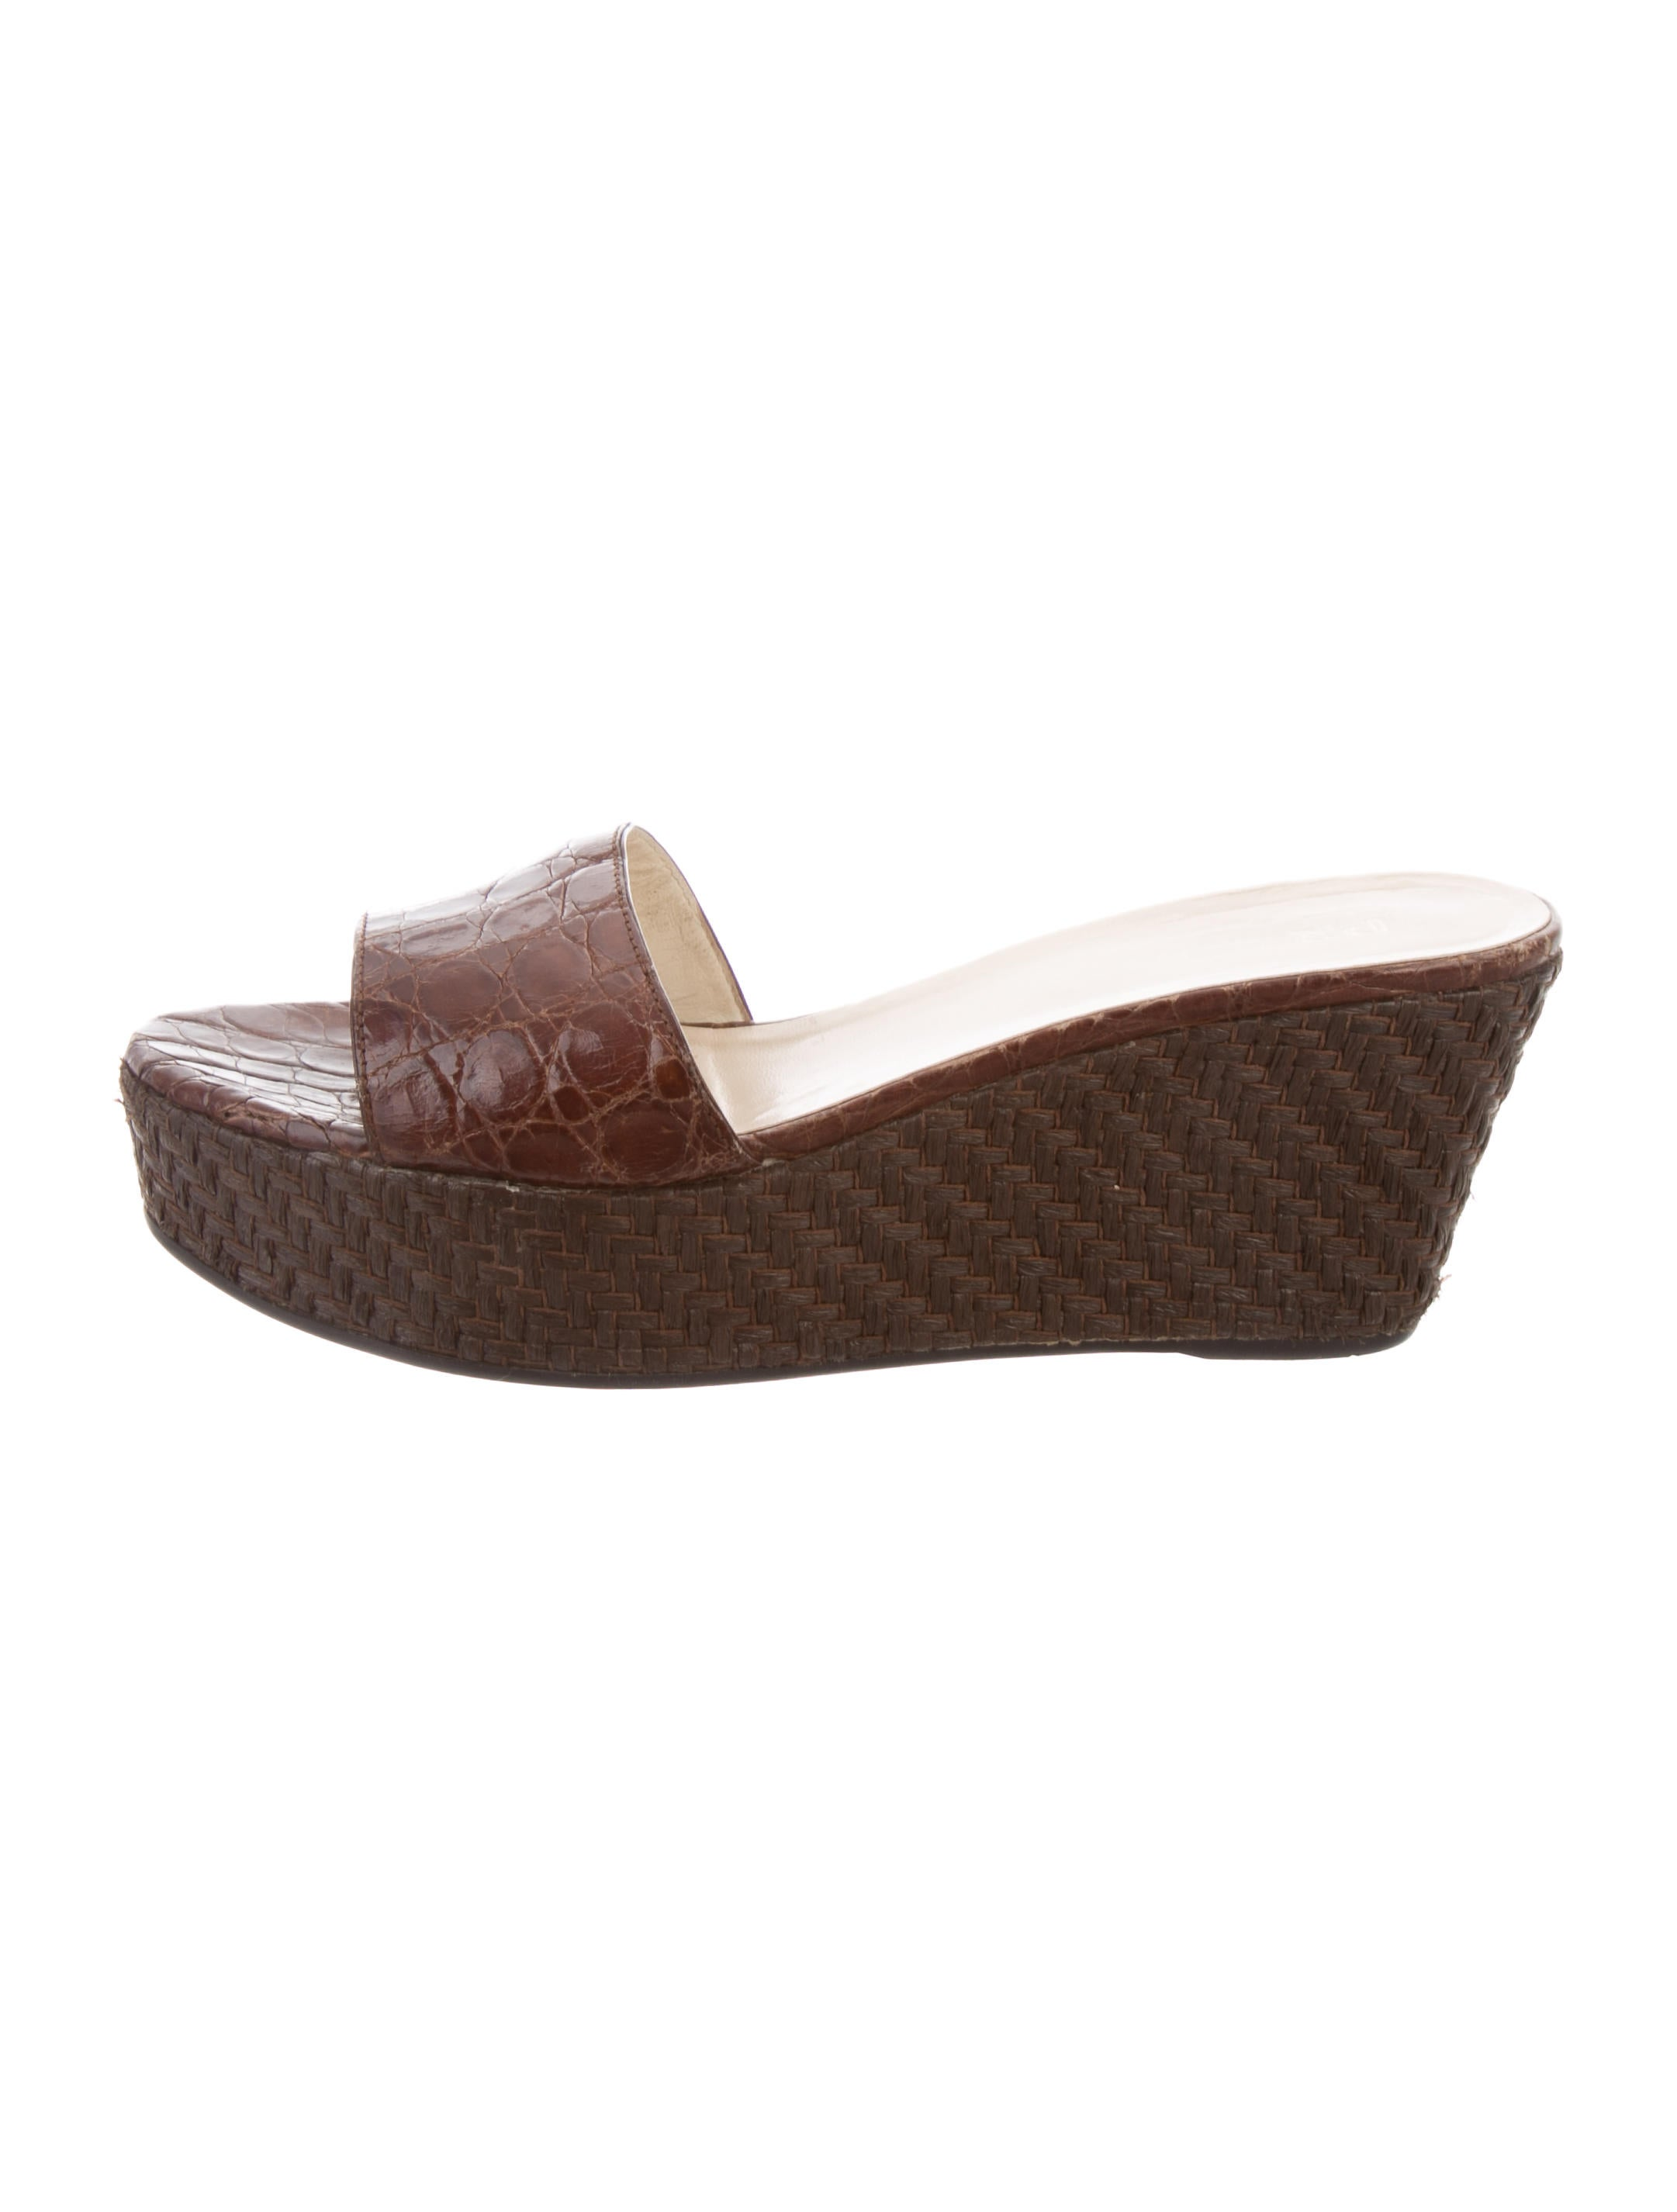 discount pay with visa Prada Alligator Slide Wedges cheap sale newest PnnUl